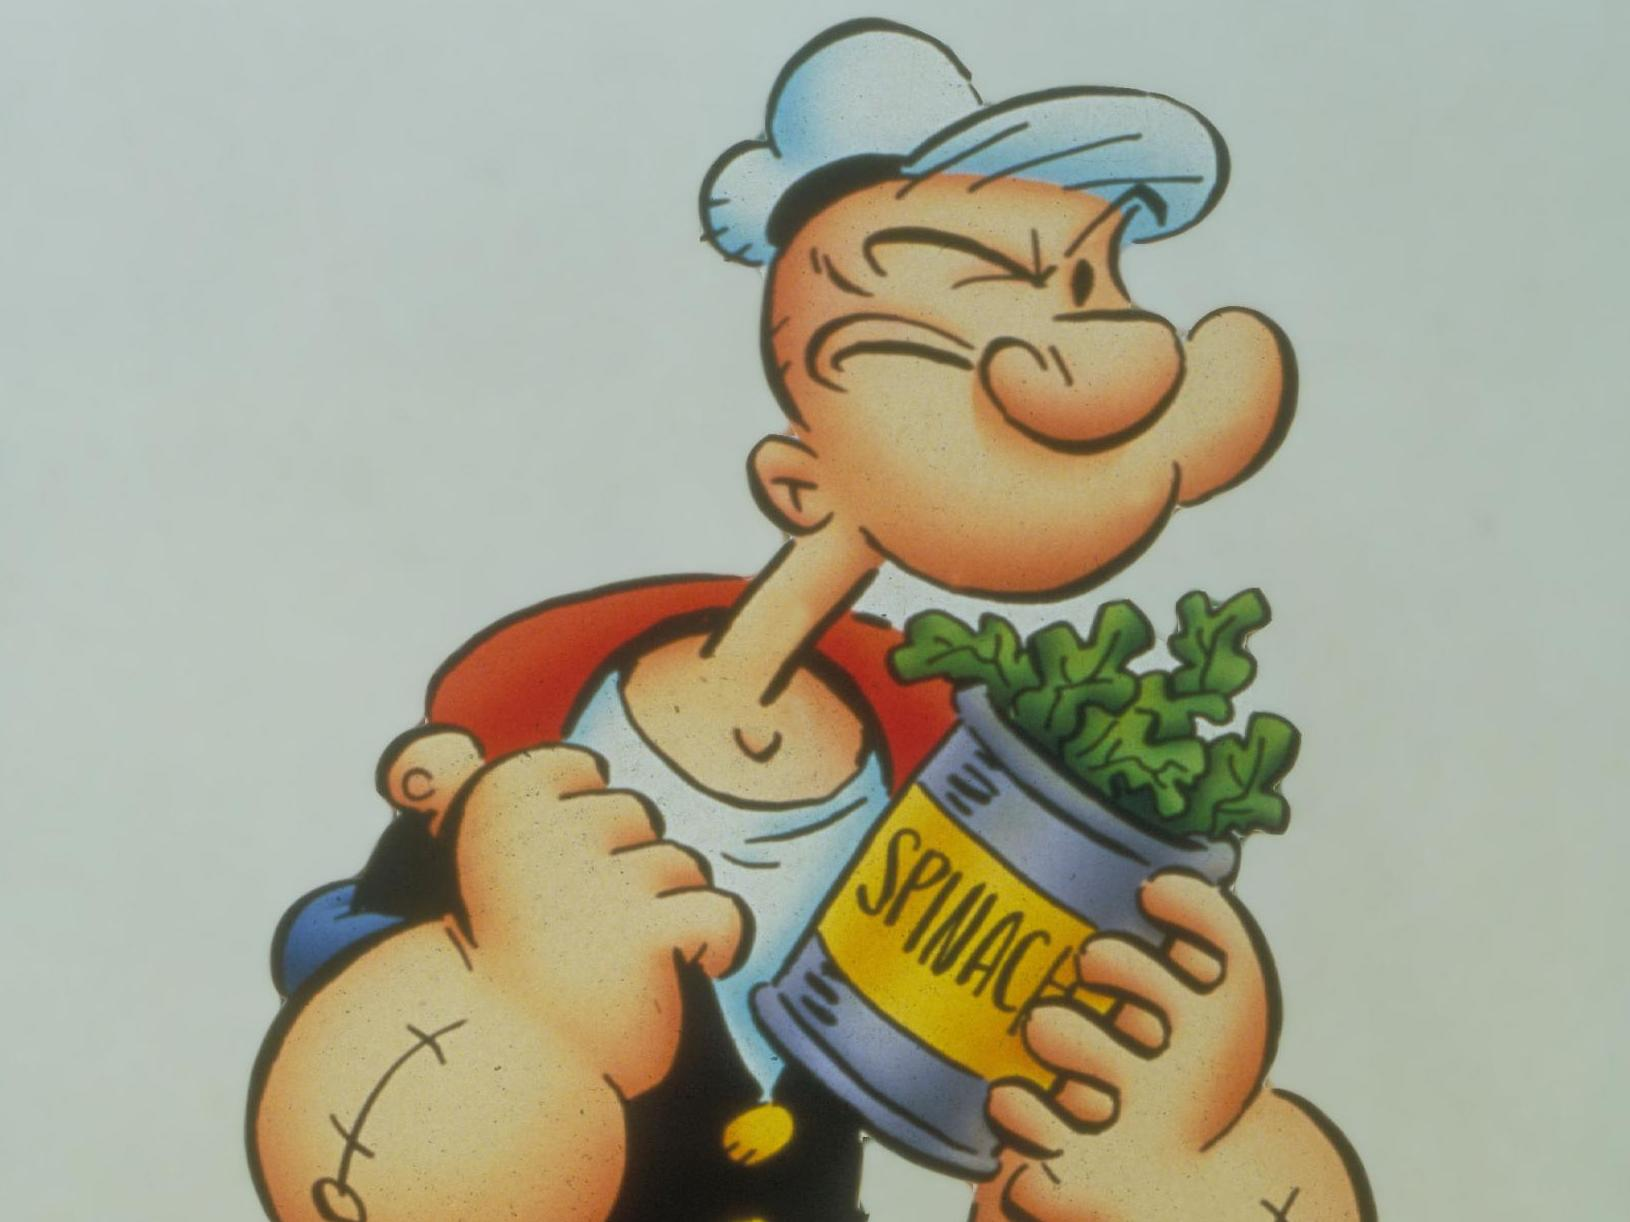 Popeye at 90: How the spinach-chugging sailor became an American classic